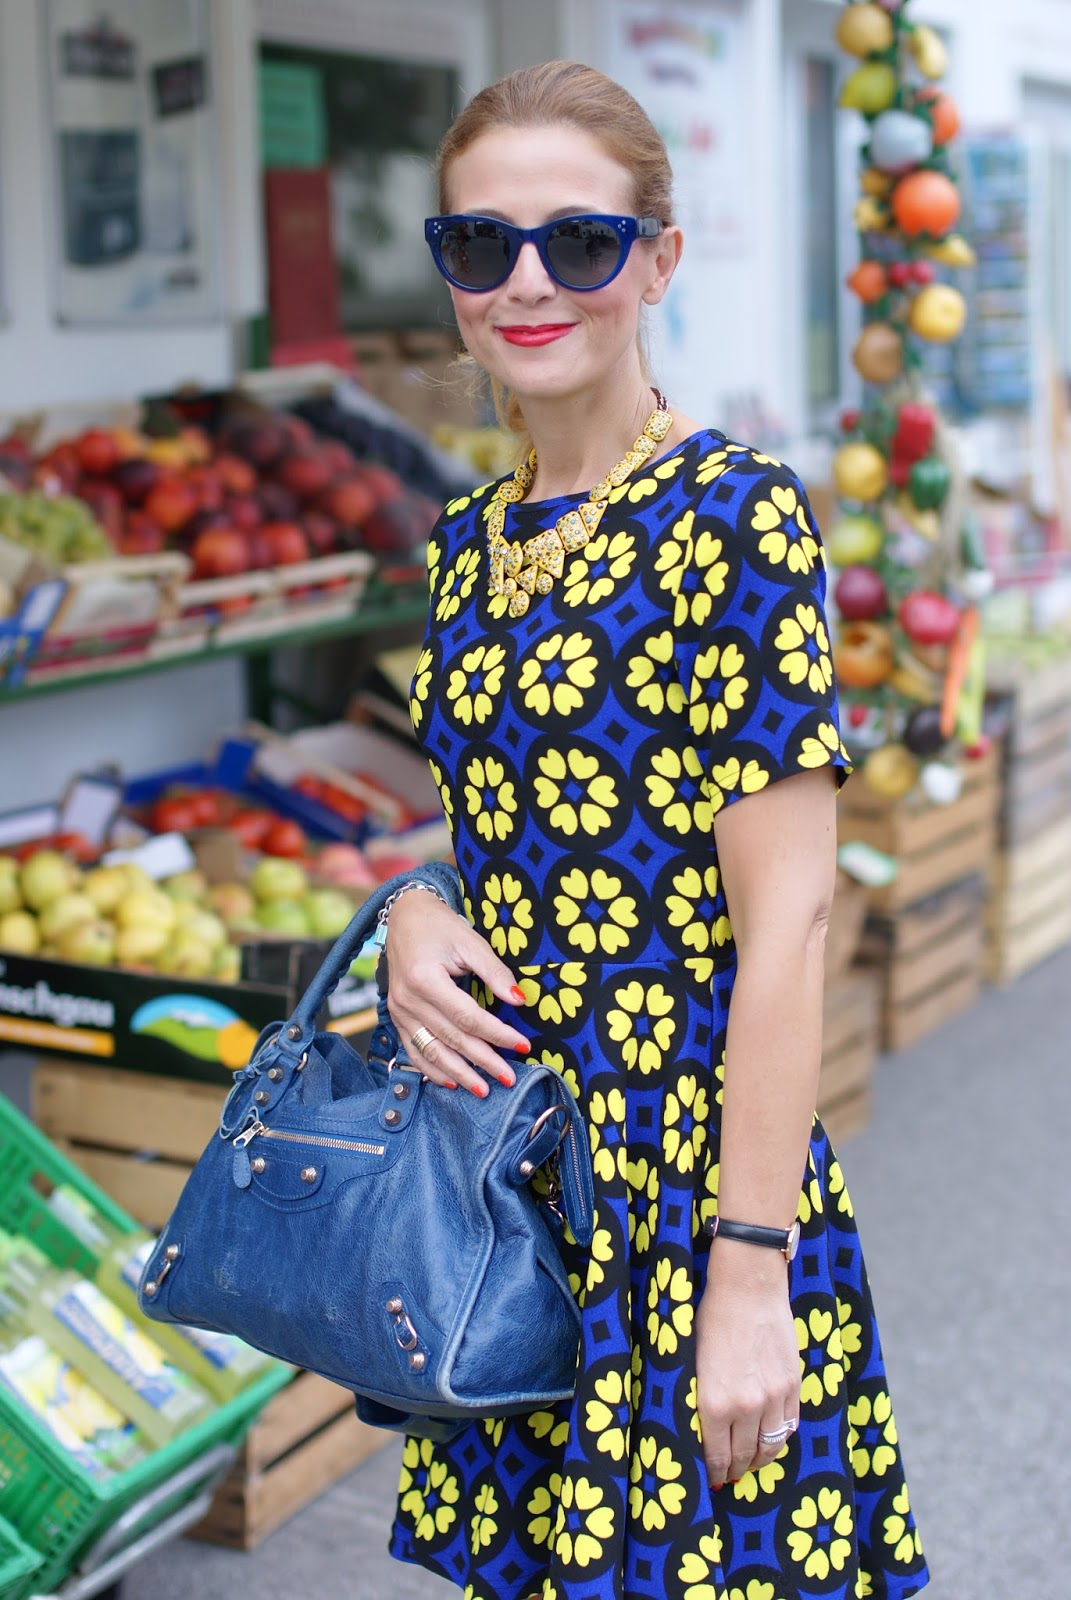 Daisy print skater dress with Hype Glass sunglasses on Fashion and Cookies fashion blog, fashion blogger girly style